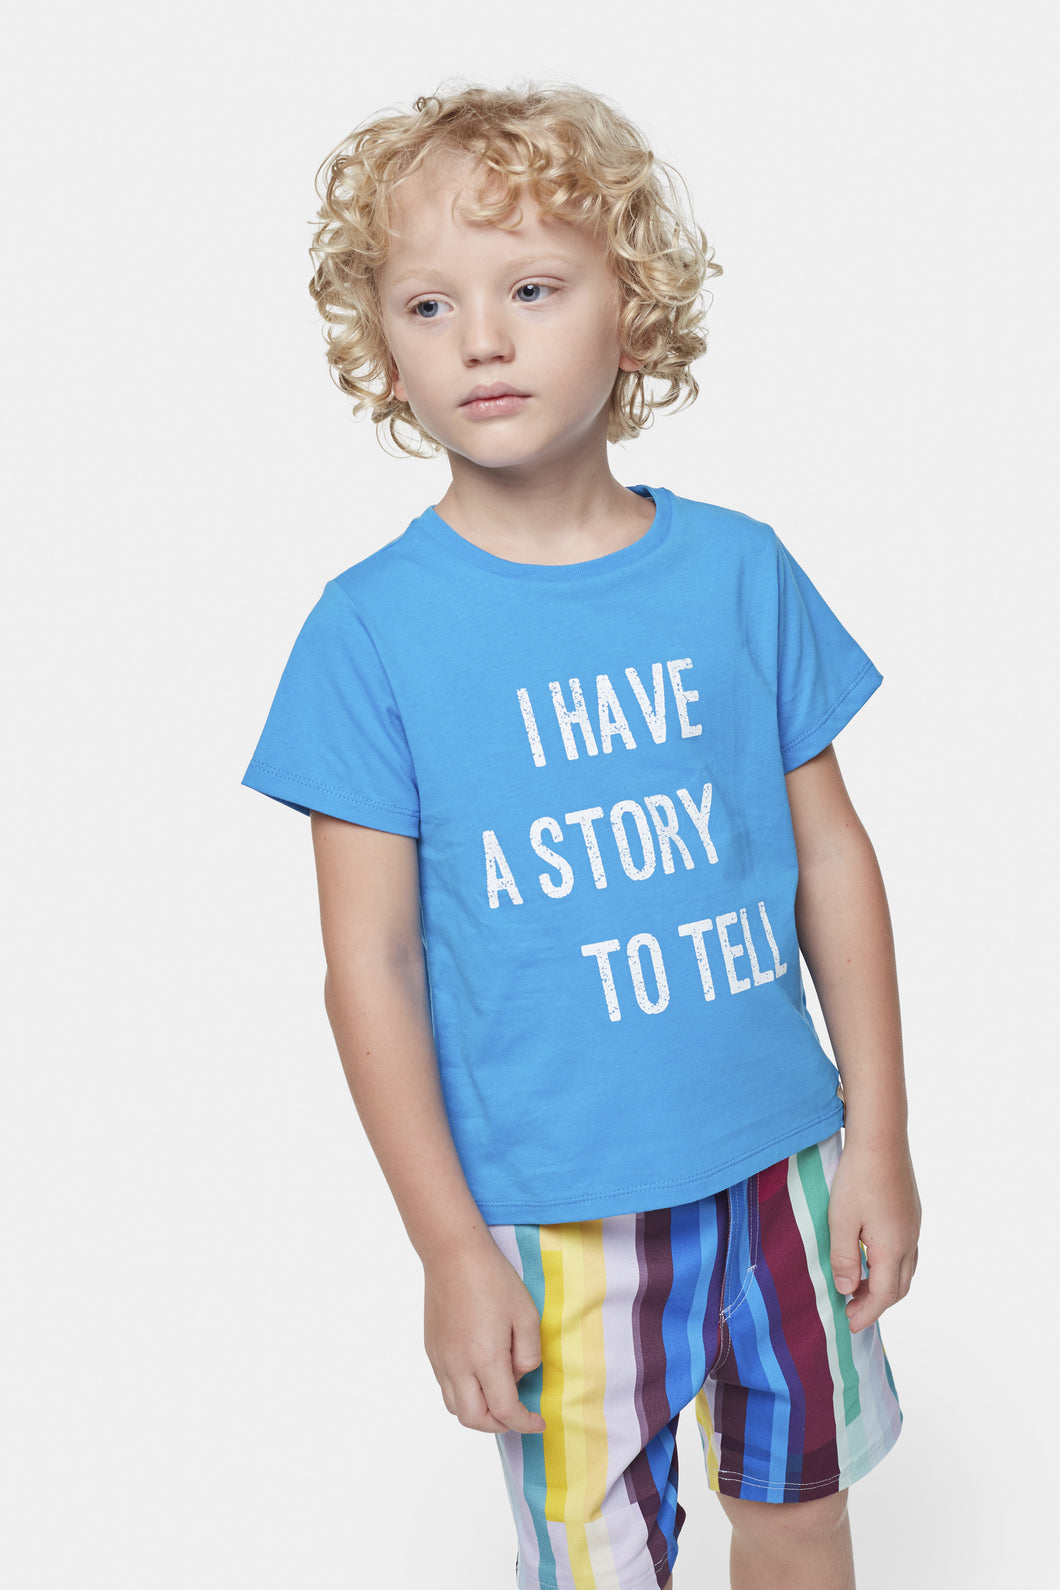 Coco Au Lait I Have a Story To Tell Blue T-Shirt T-Shirt Diva Blue